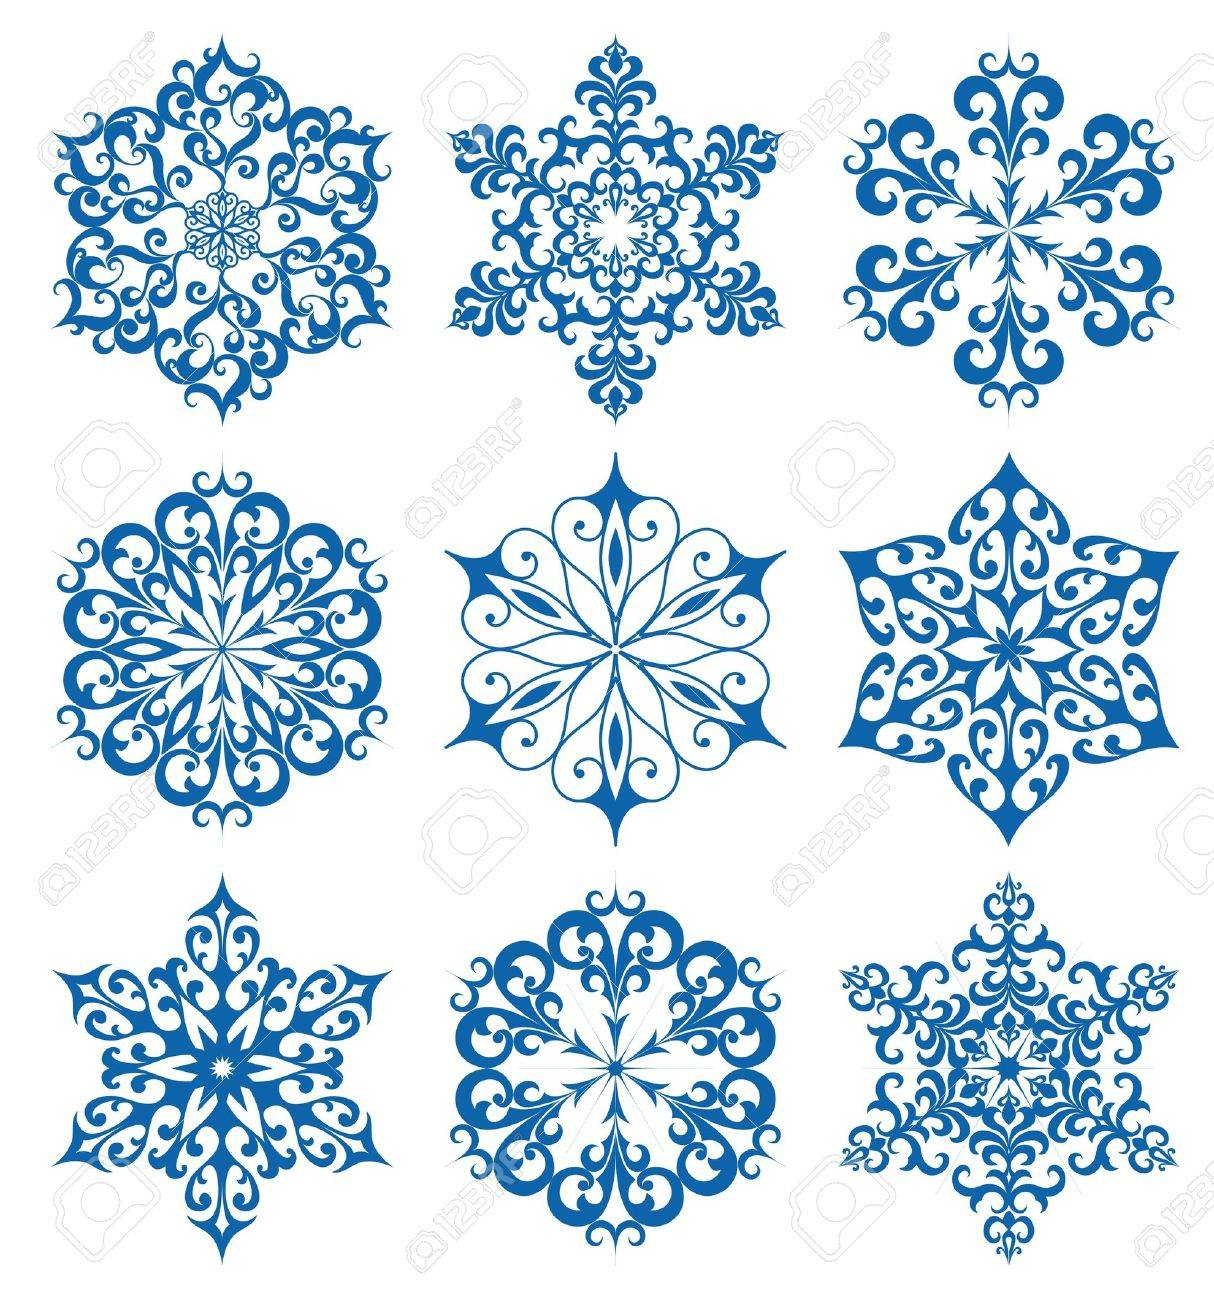 Set of snowflakes for winter design, isolated on white Stock Vector - 11225881